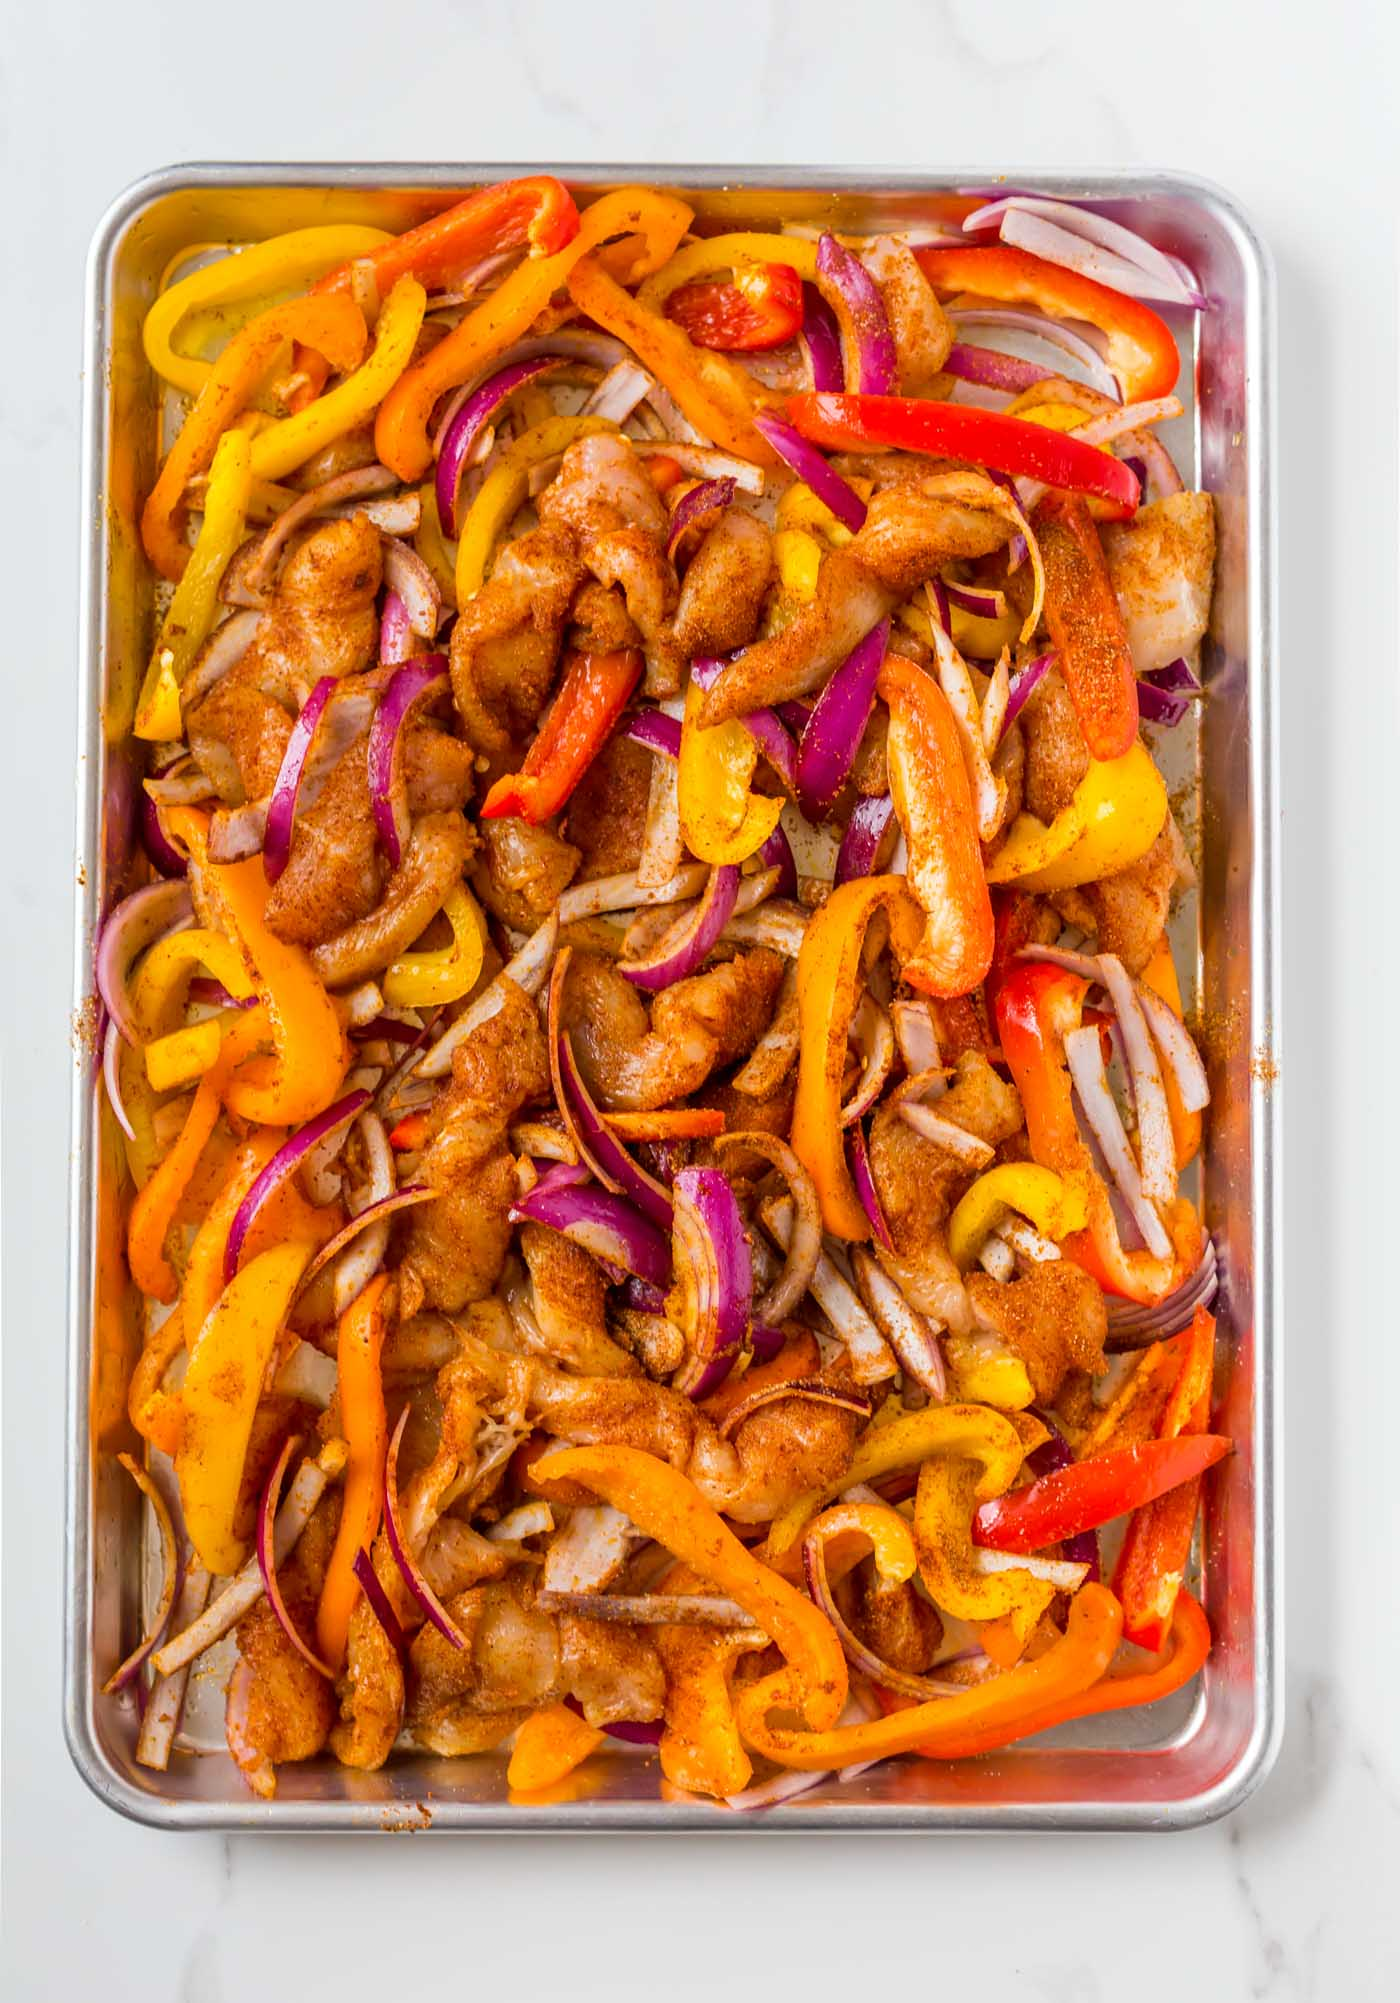 raw chicken fajitas with seasoned chicken, red, orange, and yellow bell peppers, and red onions on sheet pan